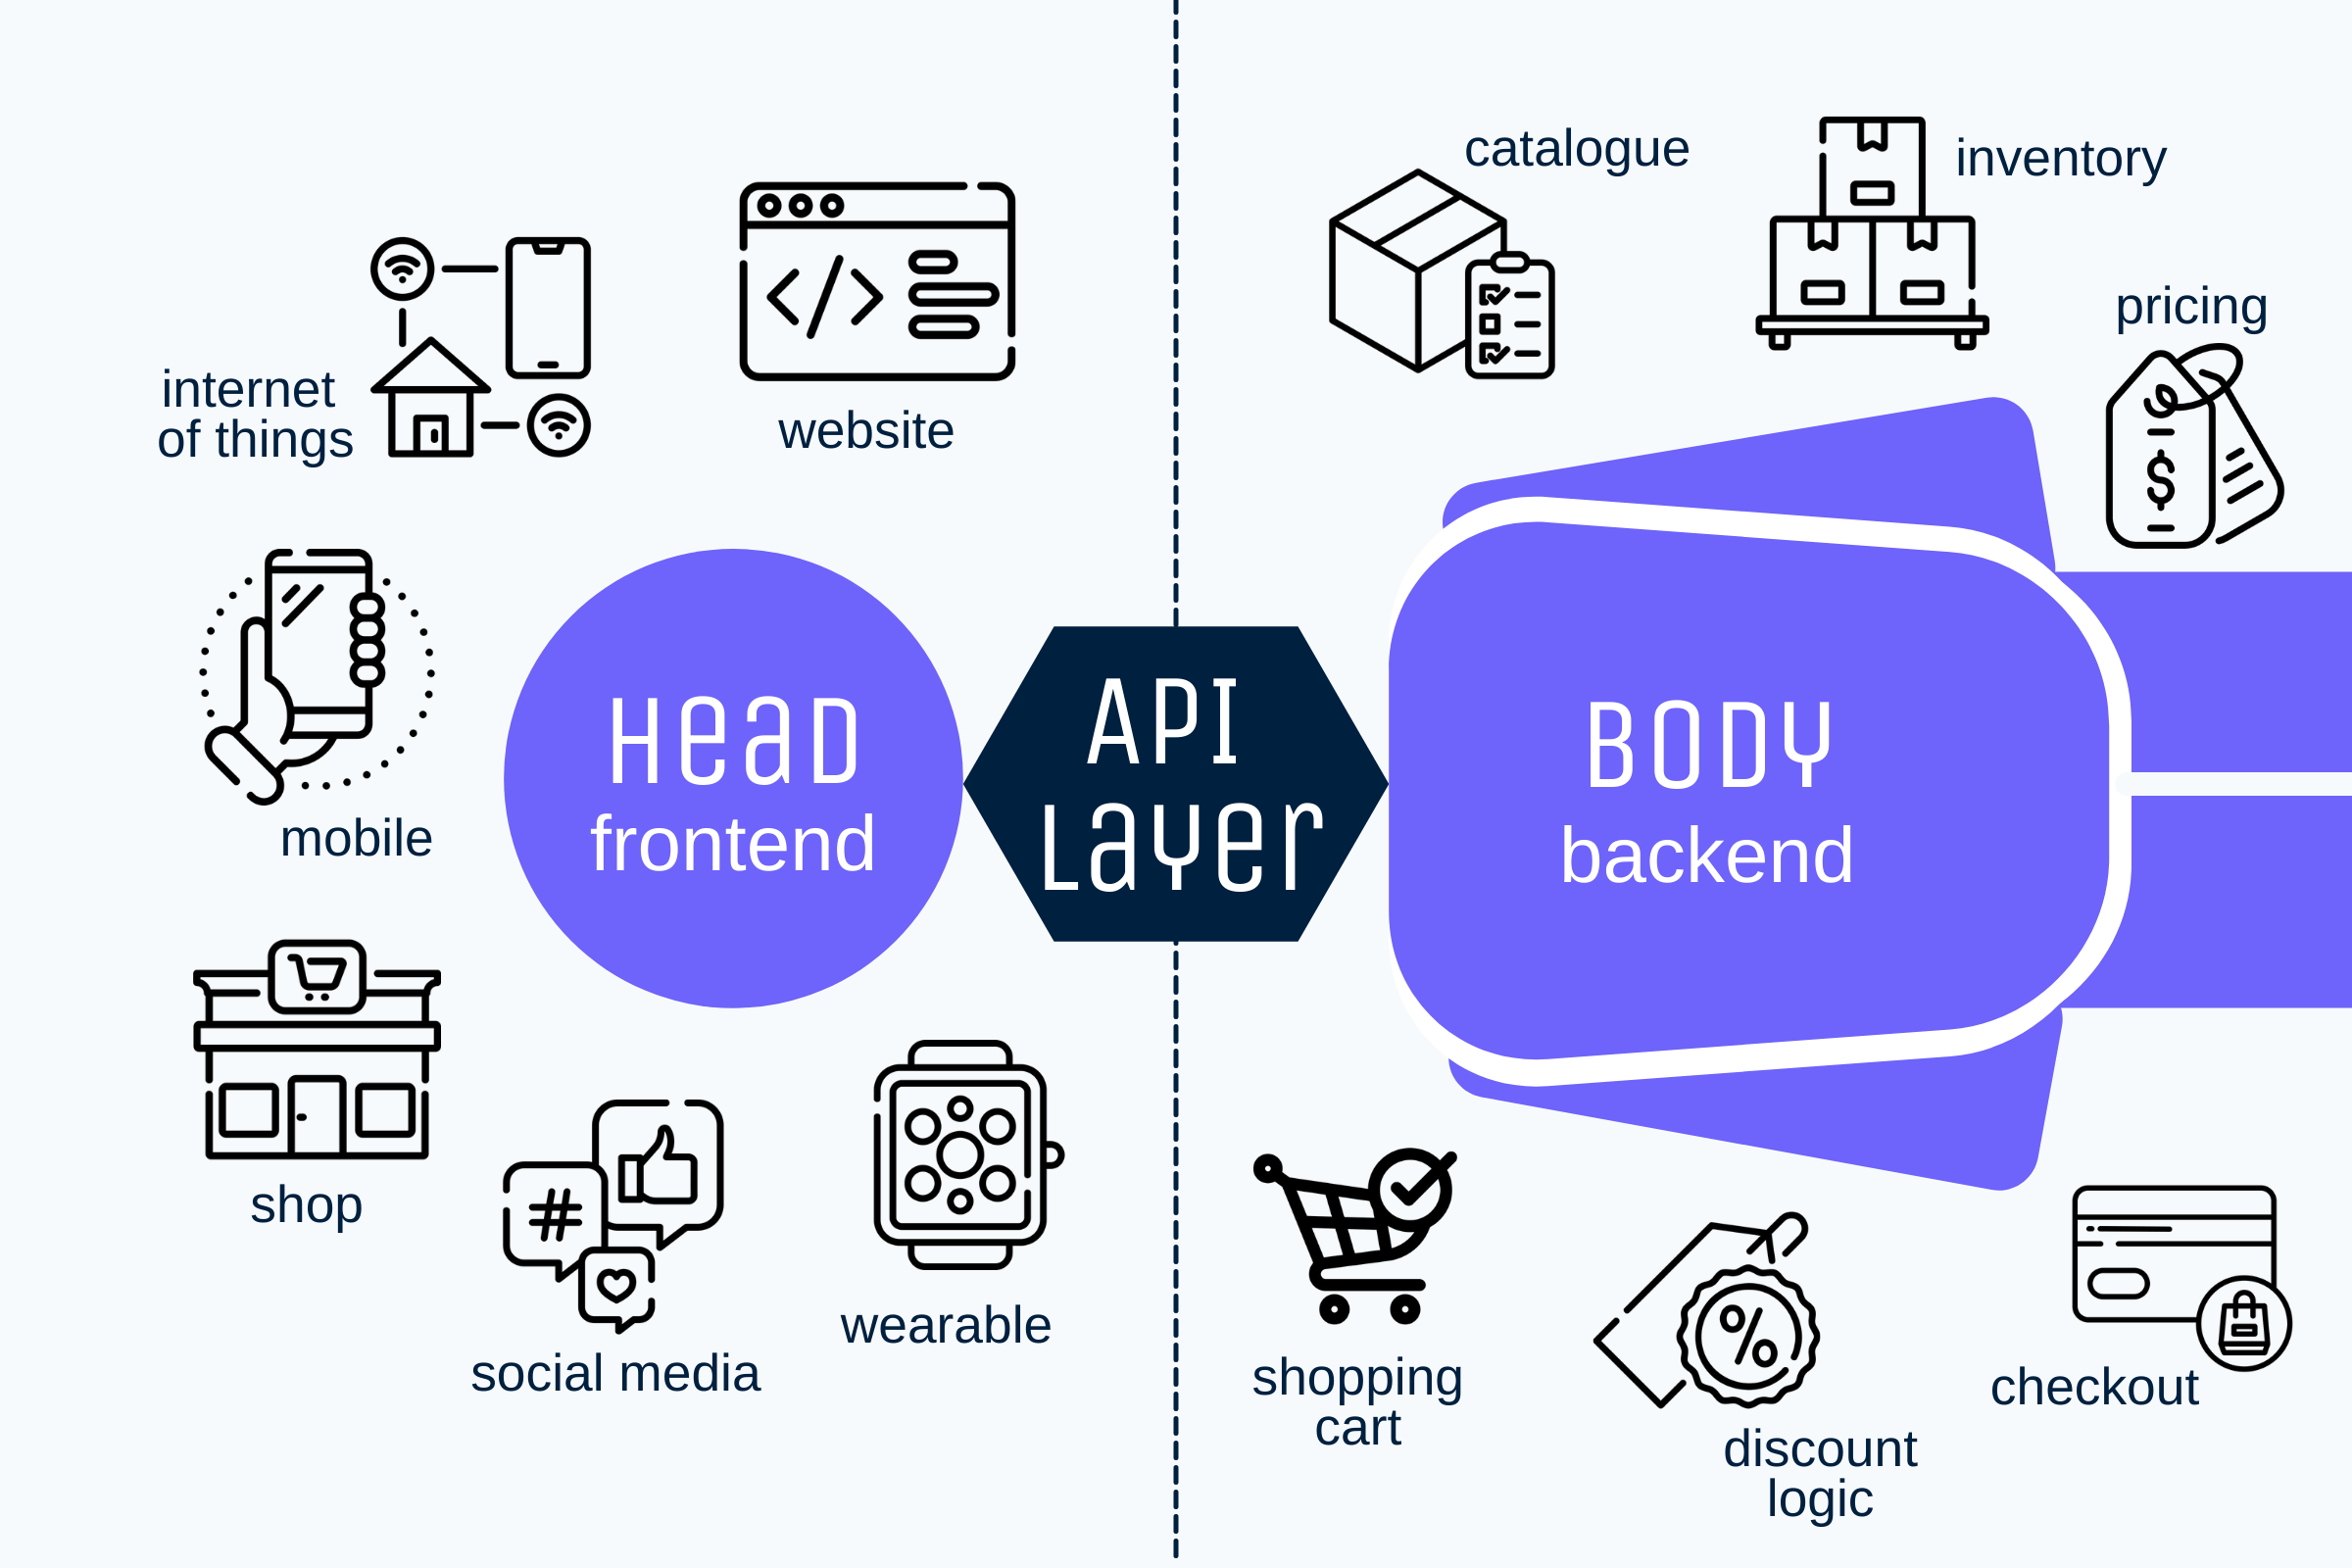 Headless e-commerce, illustrated. A bodiless frontend with a headless backend, connected by an API layer